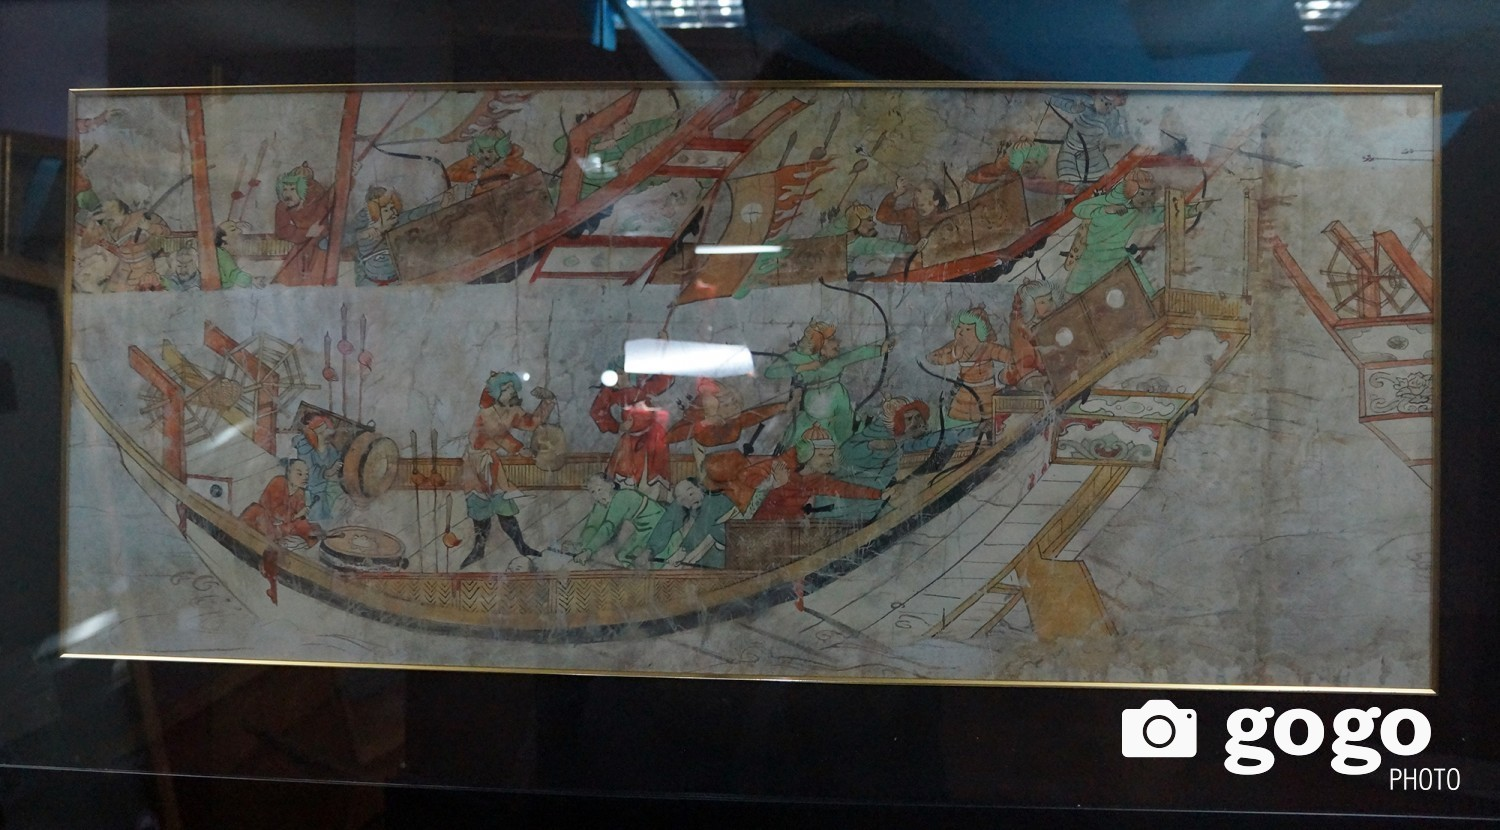 Drawing showing Mongolians' attack in 1293 /restored at Saitama's museum in 1819-1843/